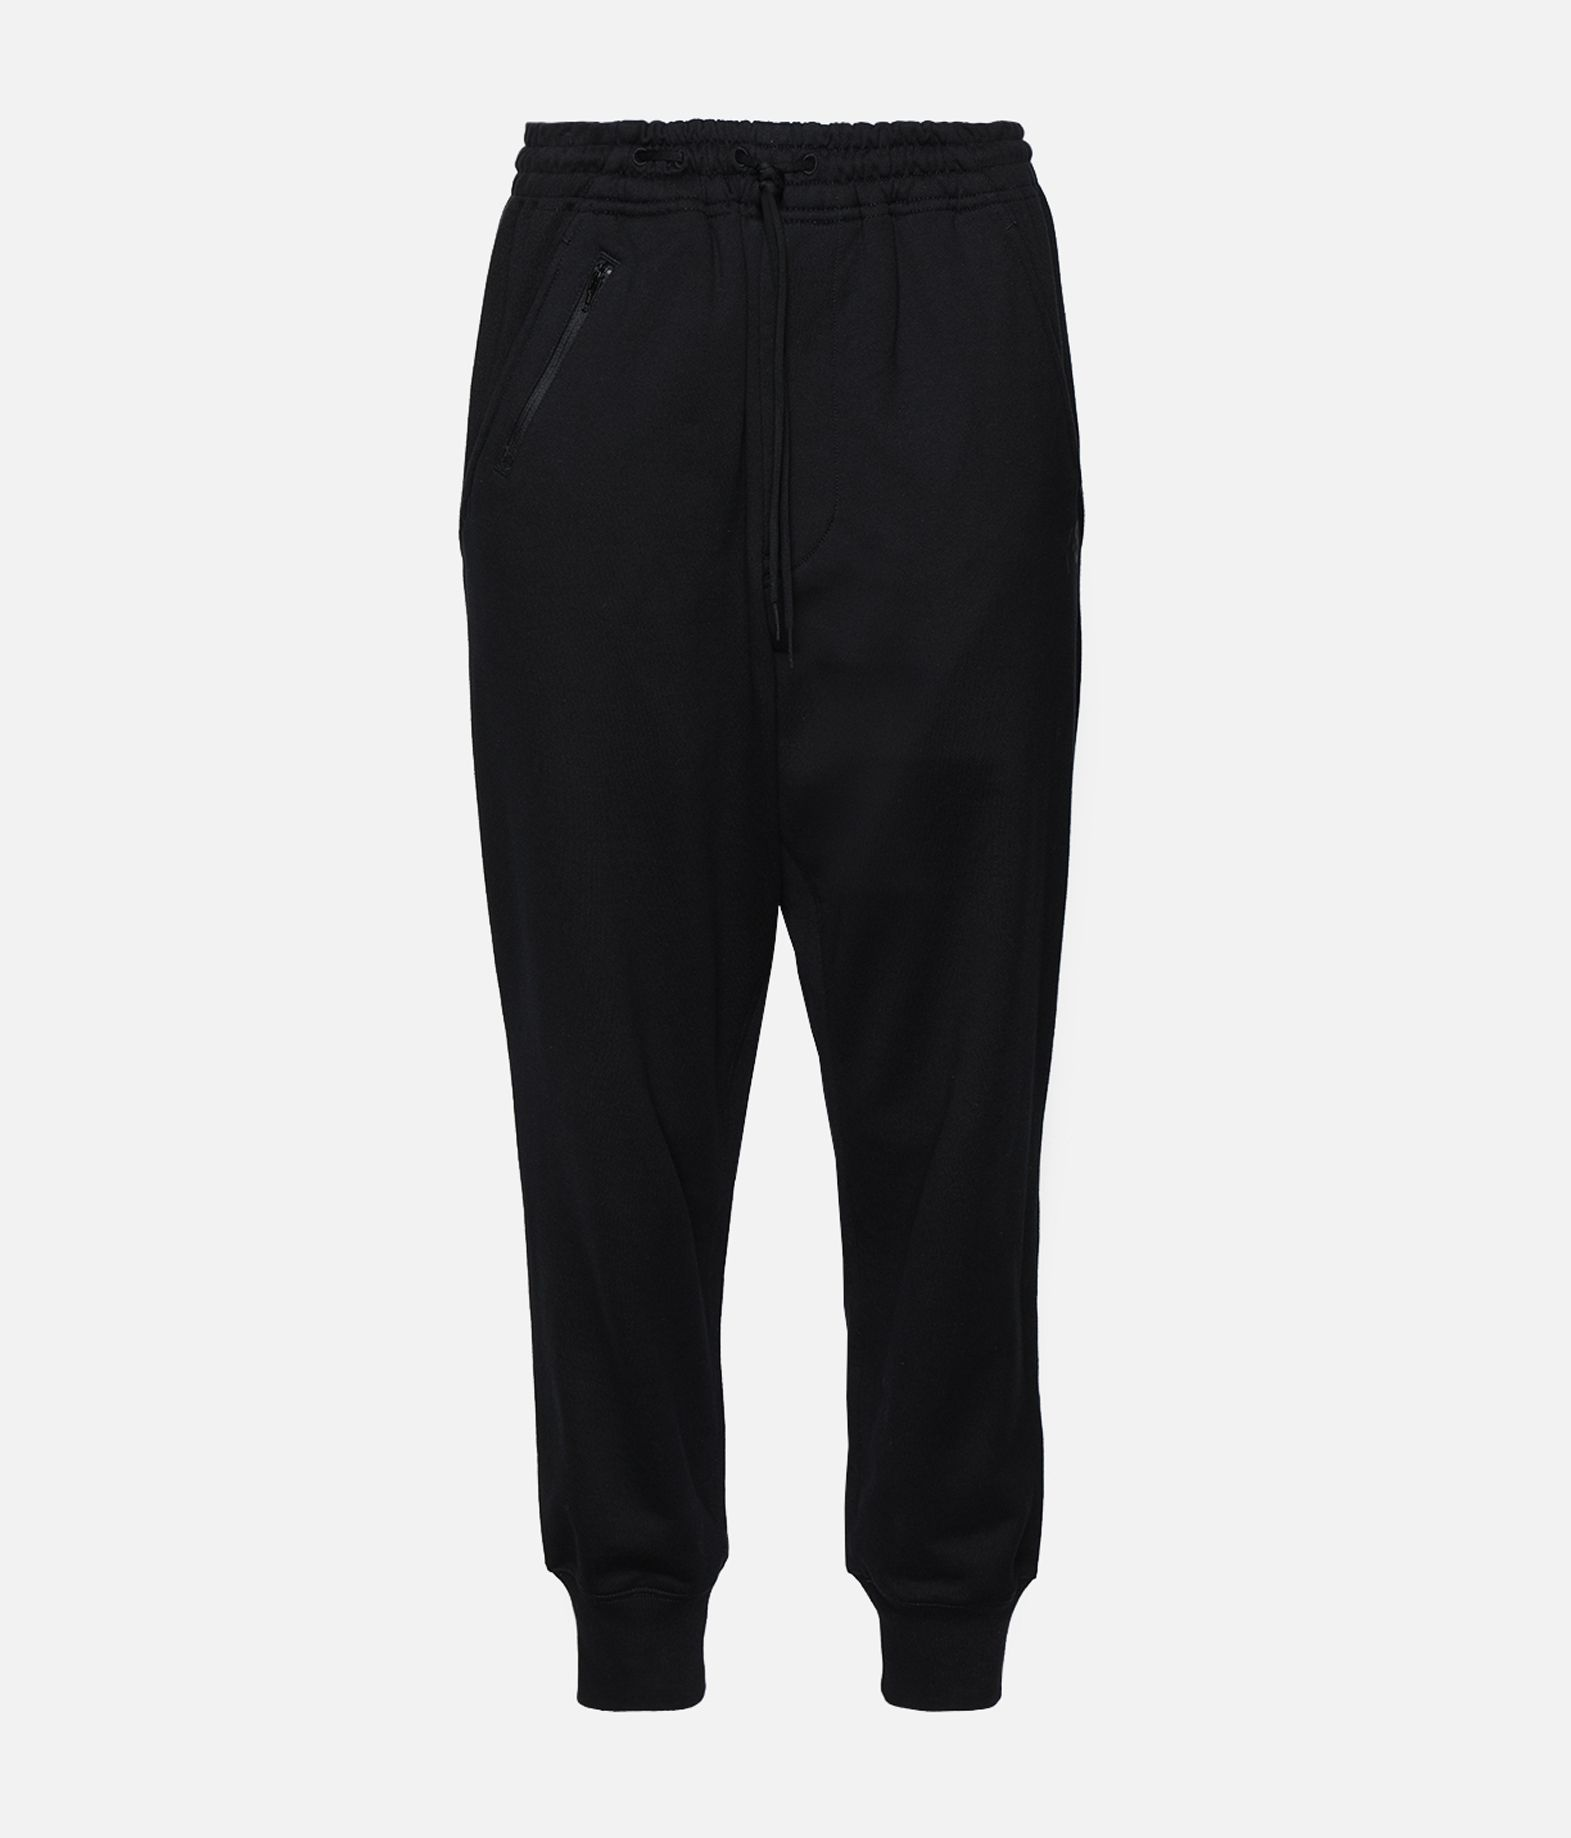 Y-3 Y-3 Classic Cuffed Pants Casual pants Woman f